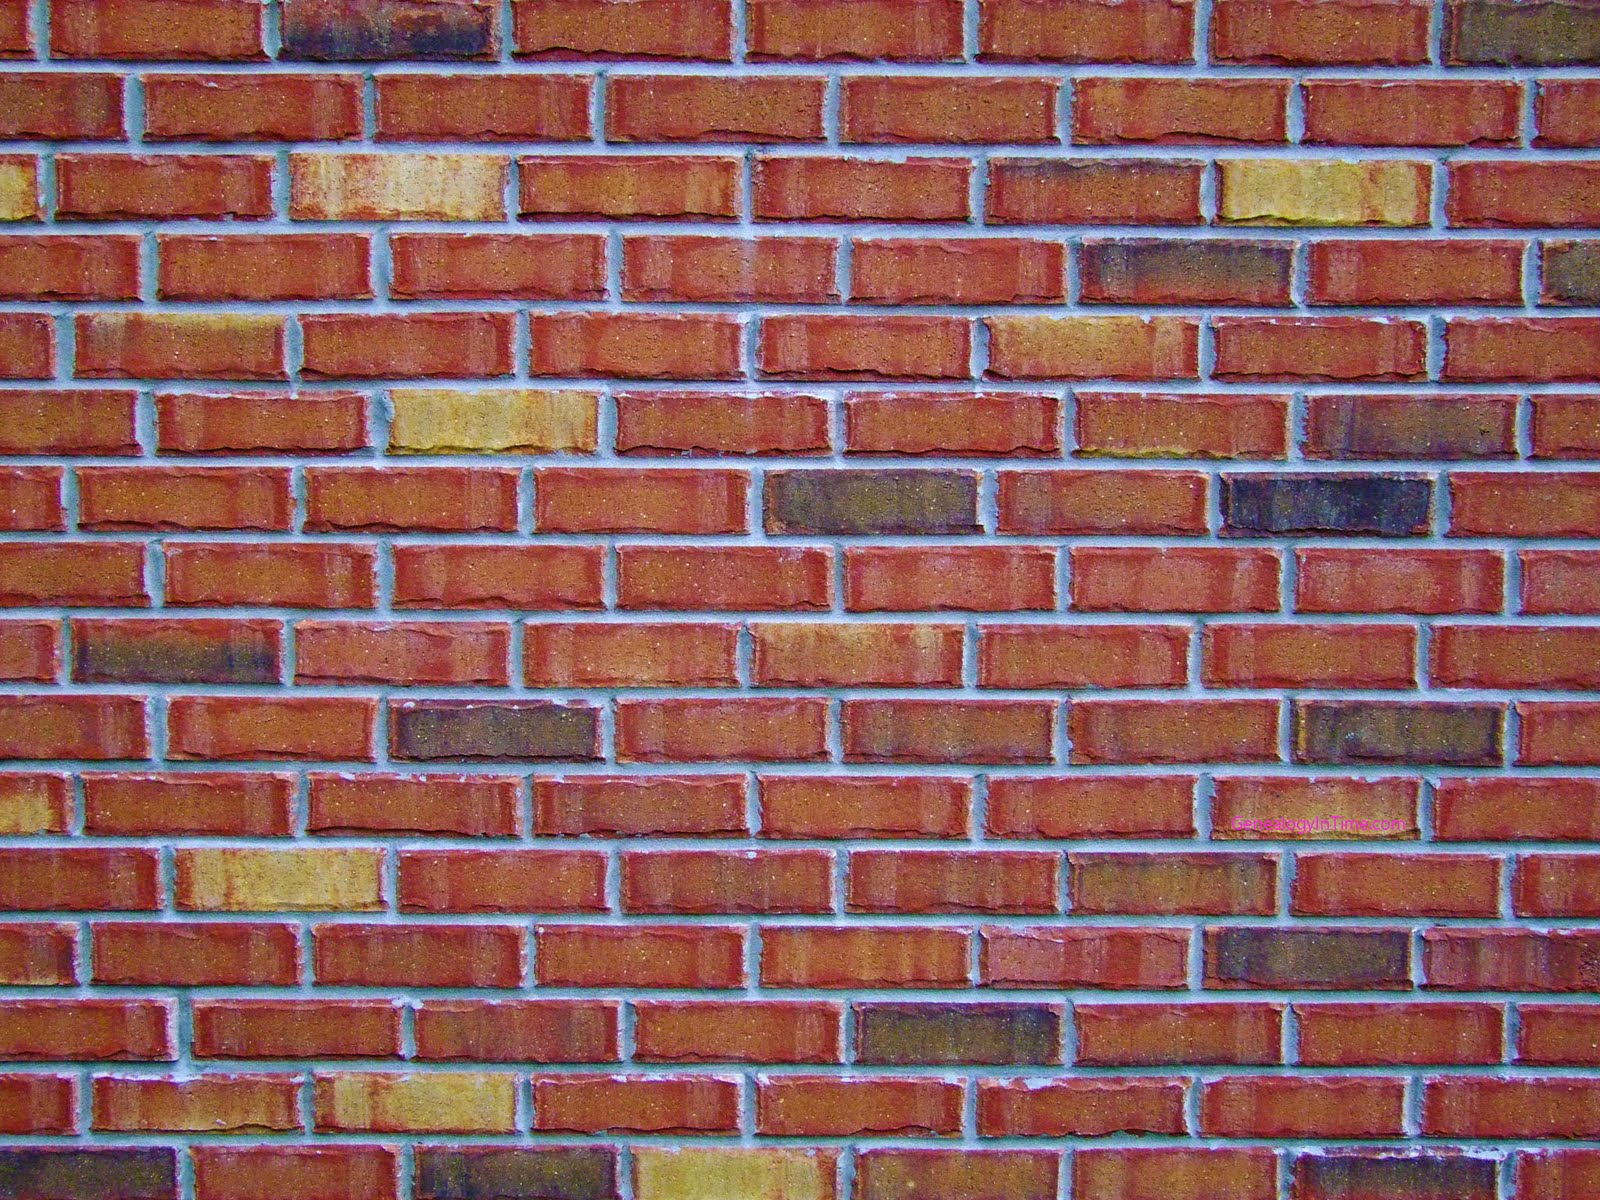 Wallpaper blog brick hd - Wallpaper for walls images ...